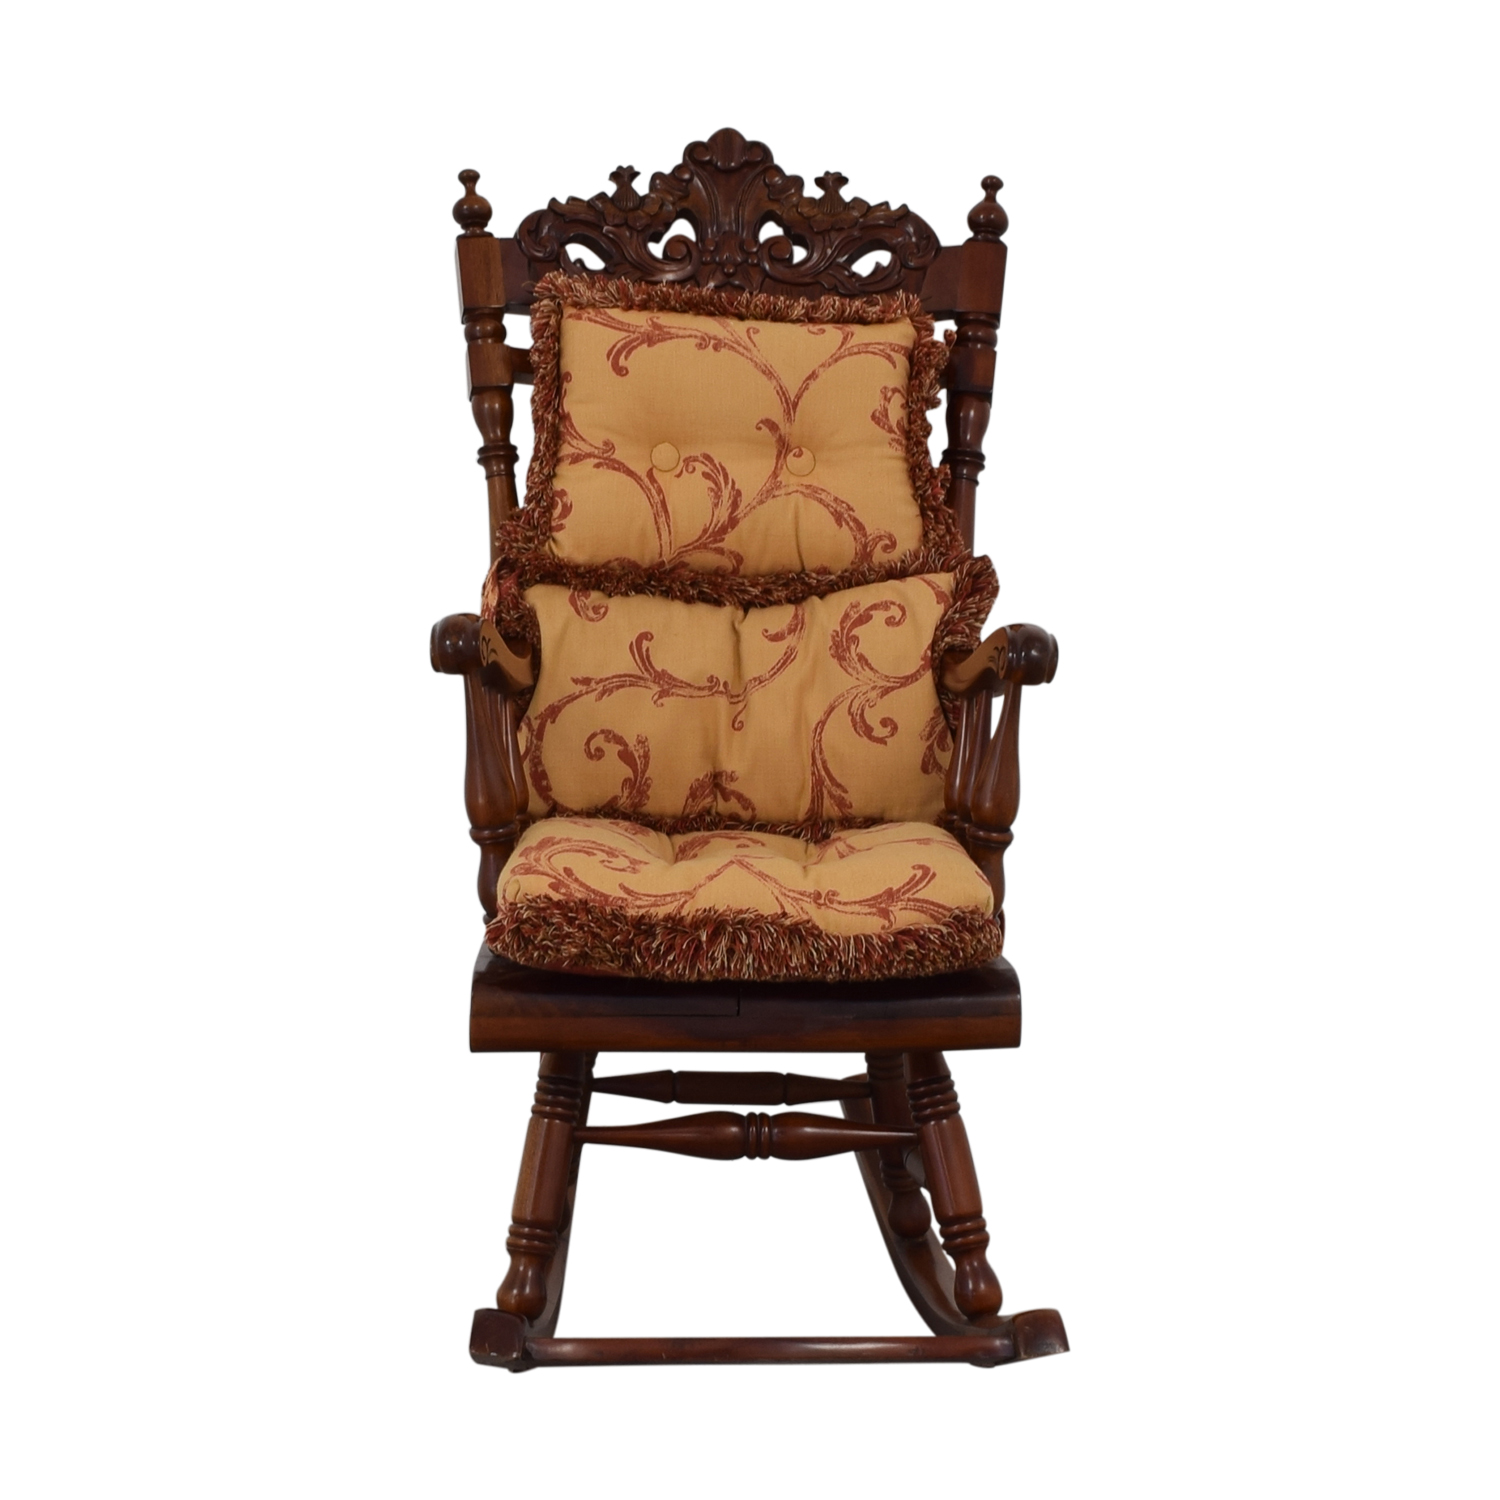 90 Off Carved Wood Rocking Chair With Cushions Chairs